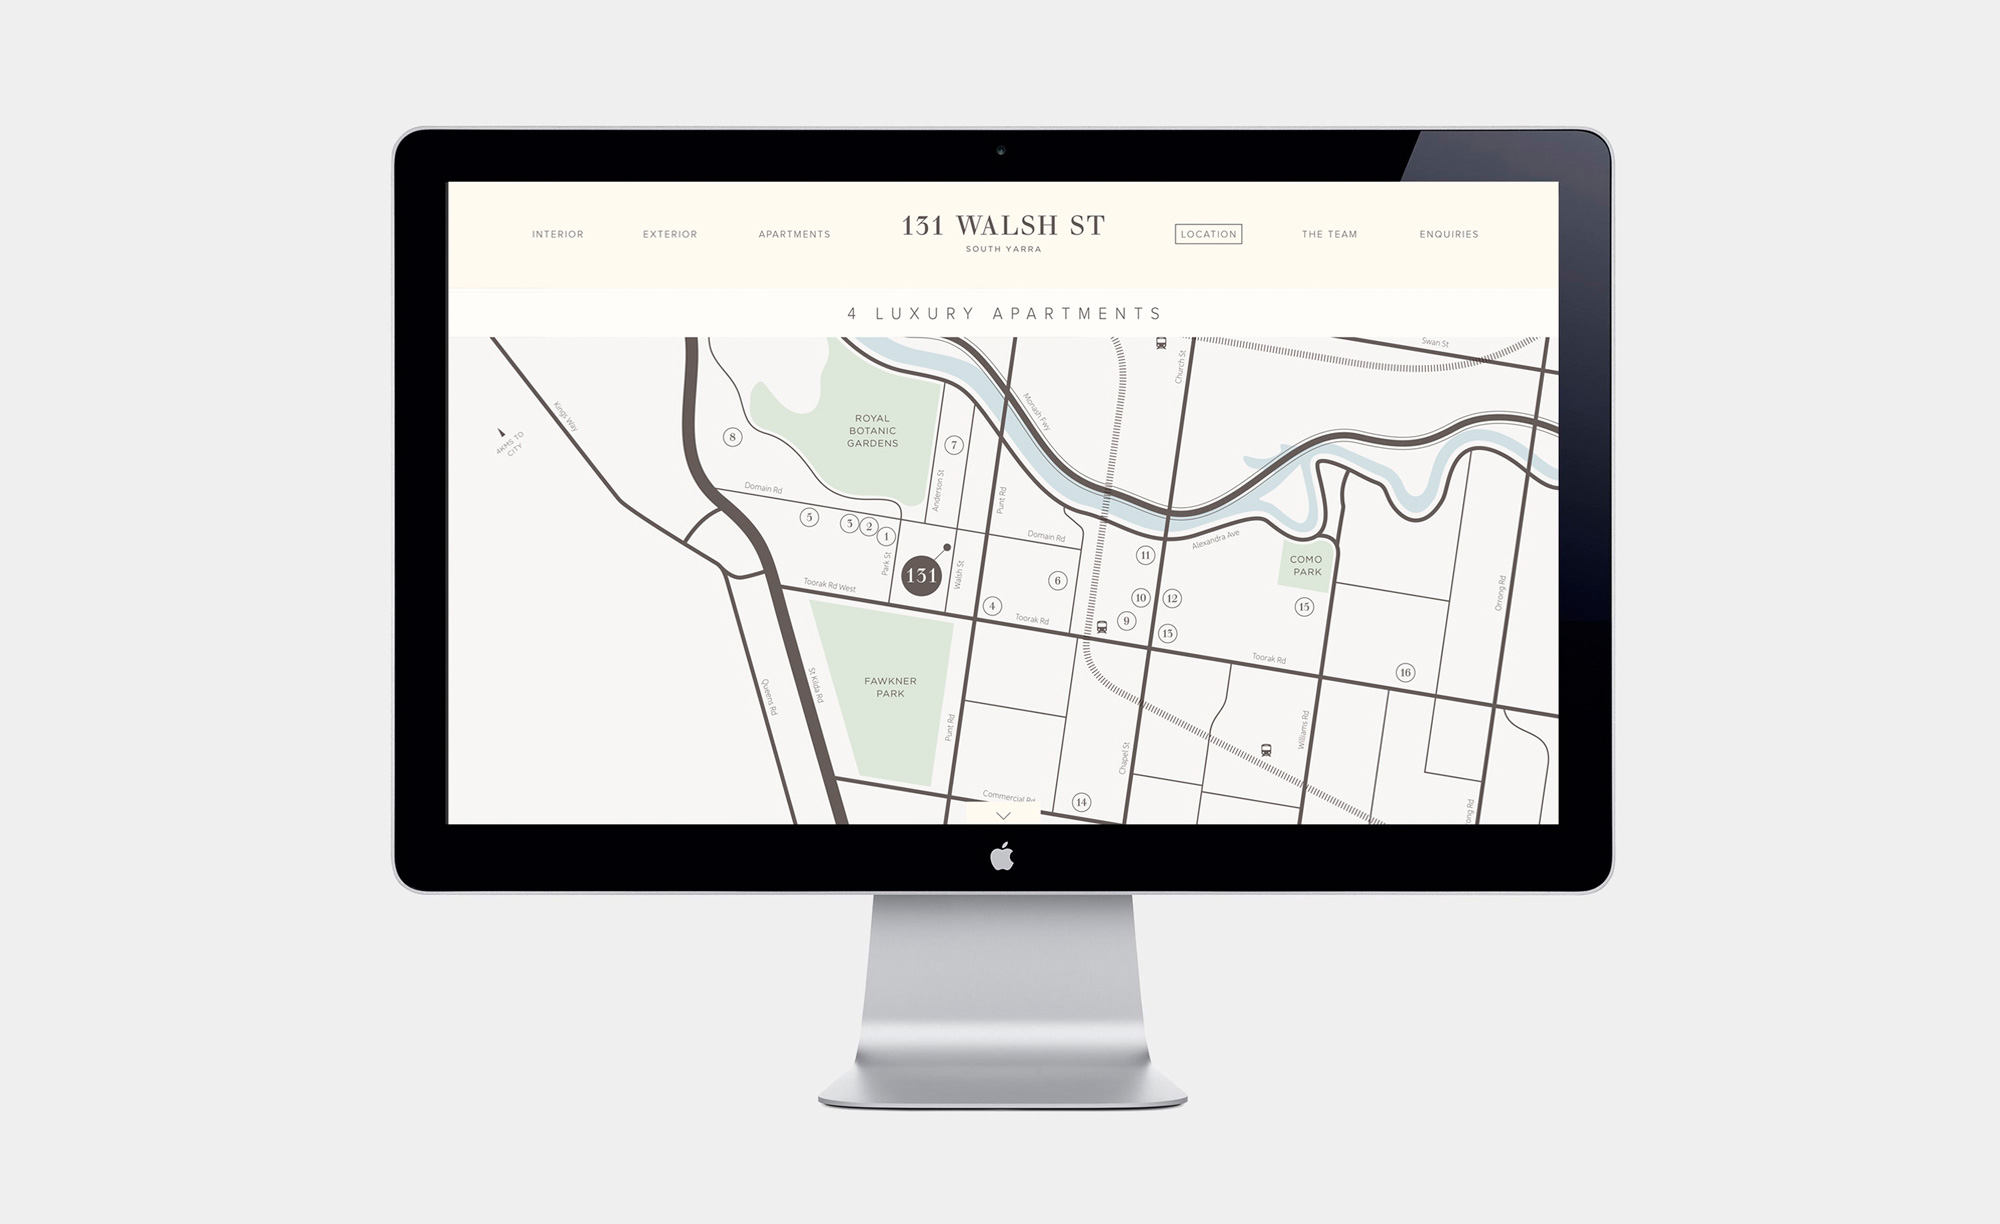 Map on the 131 Walsh Street website